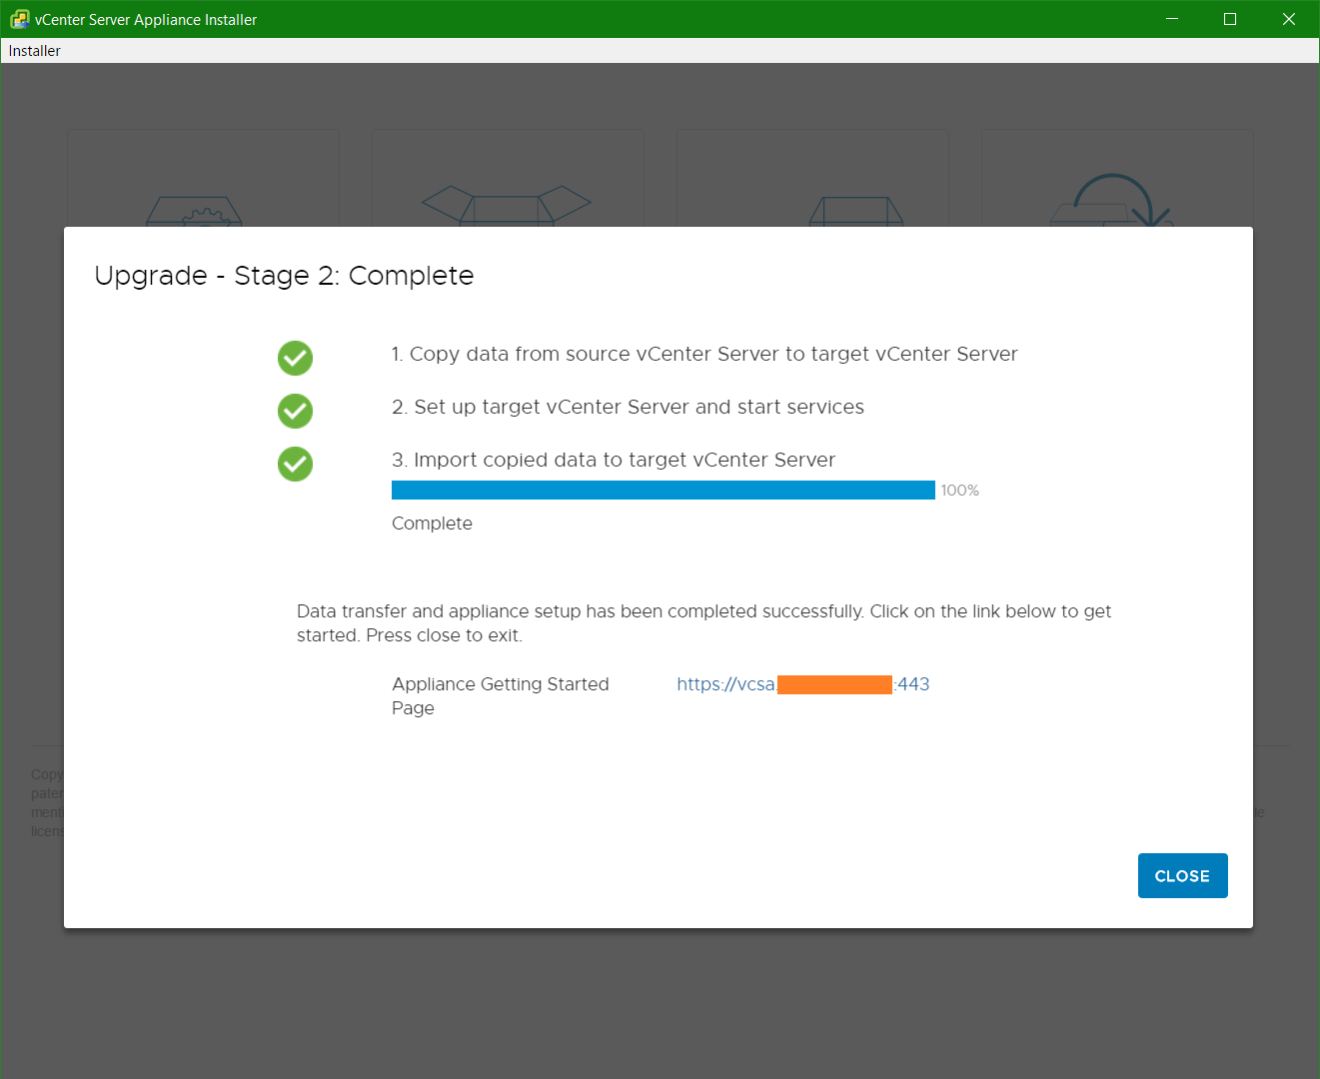 domalab.com vmware vcsa upgrade stage 2 import data